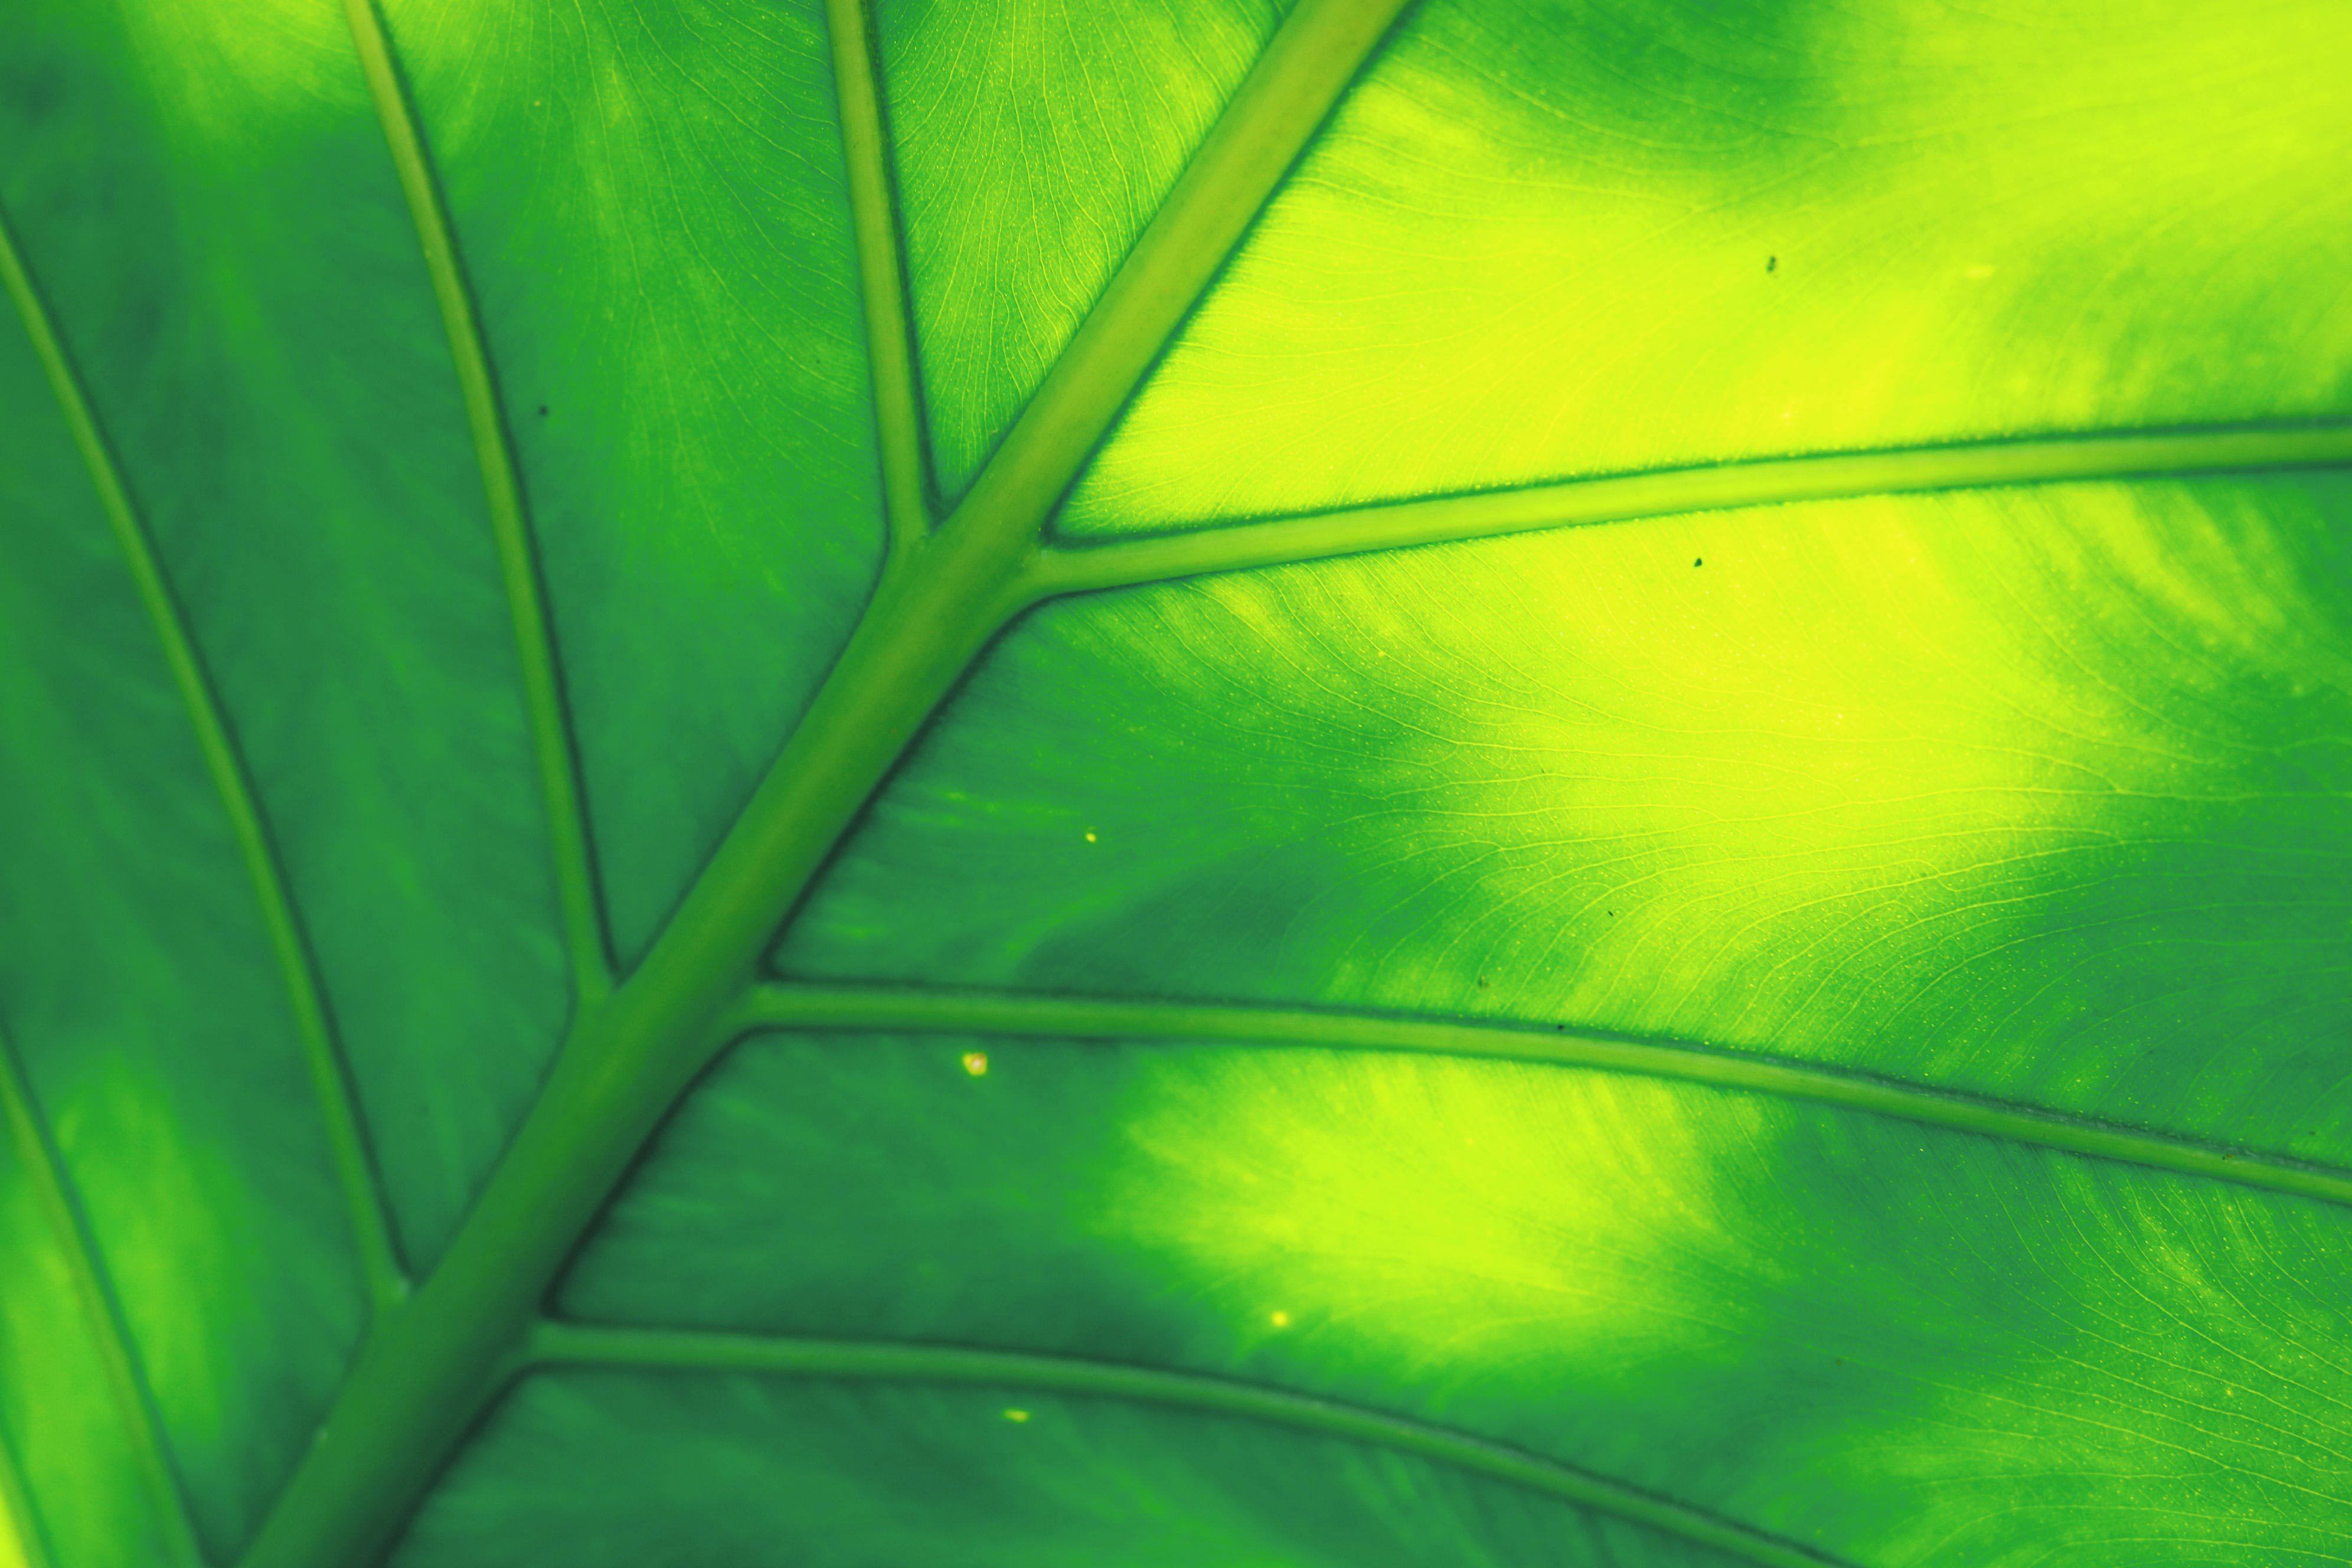 Free stock photo of leaf, green, close-up